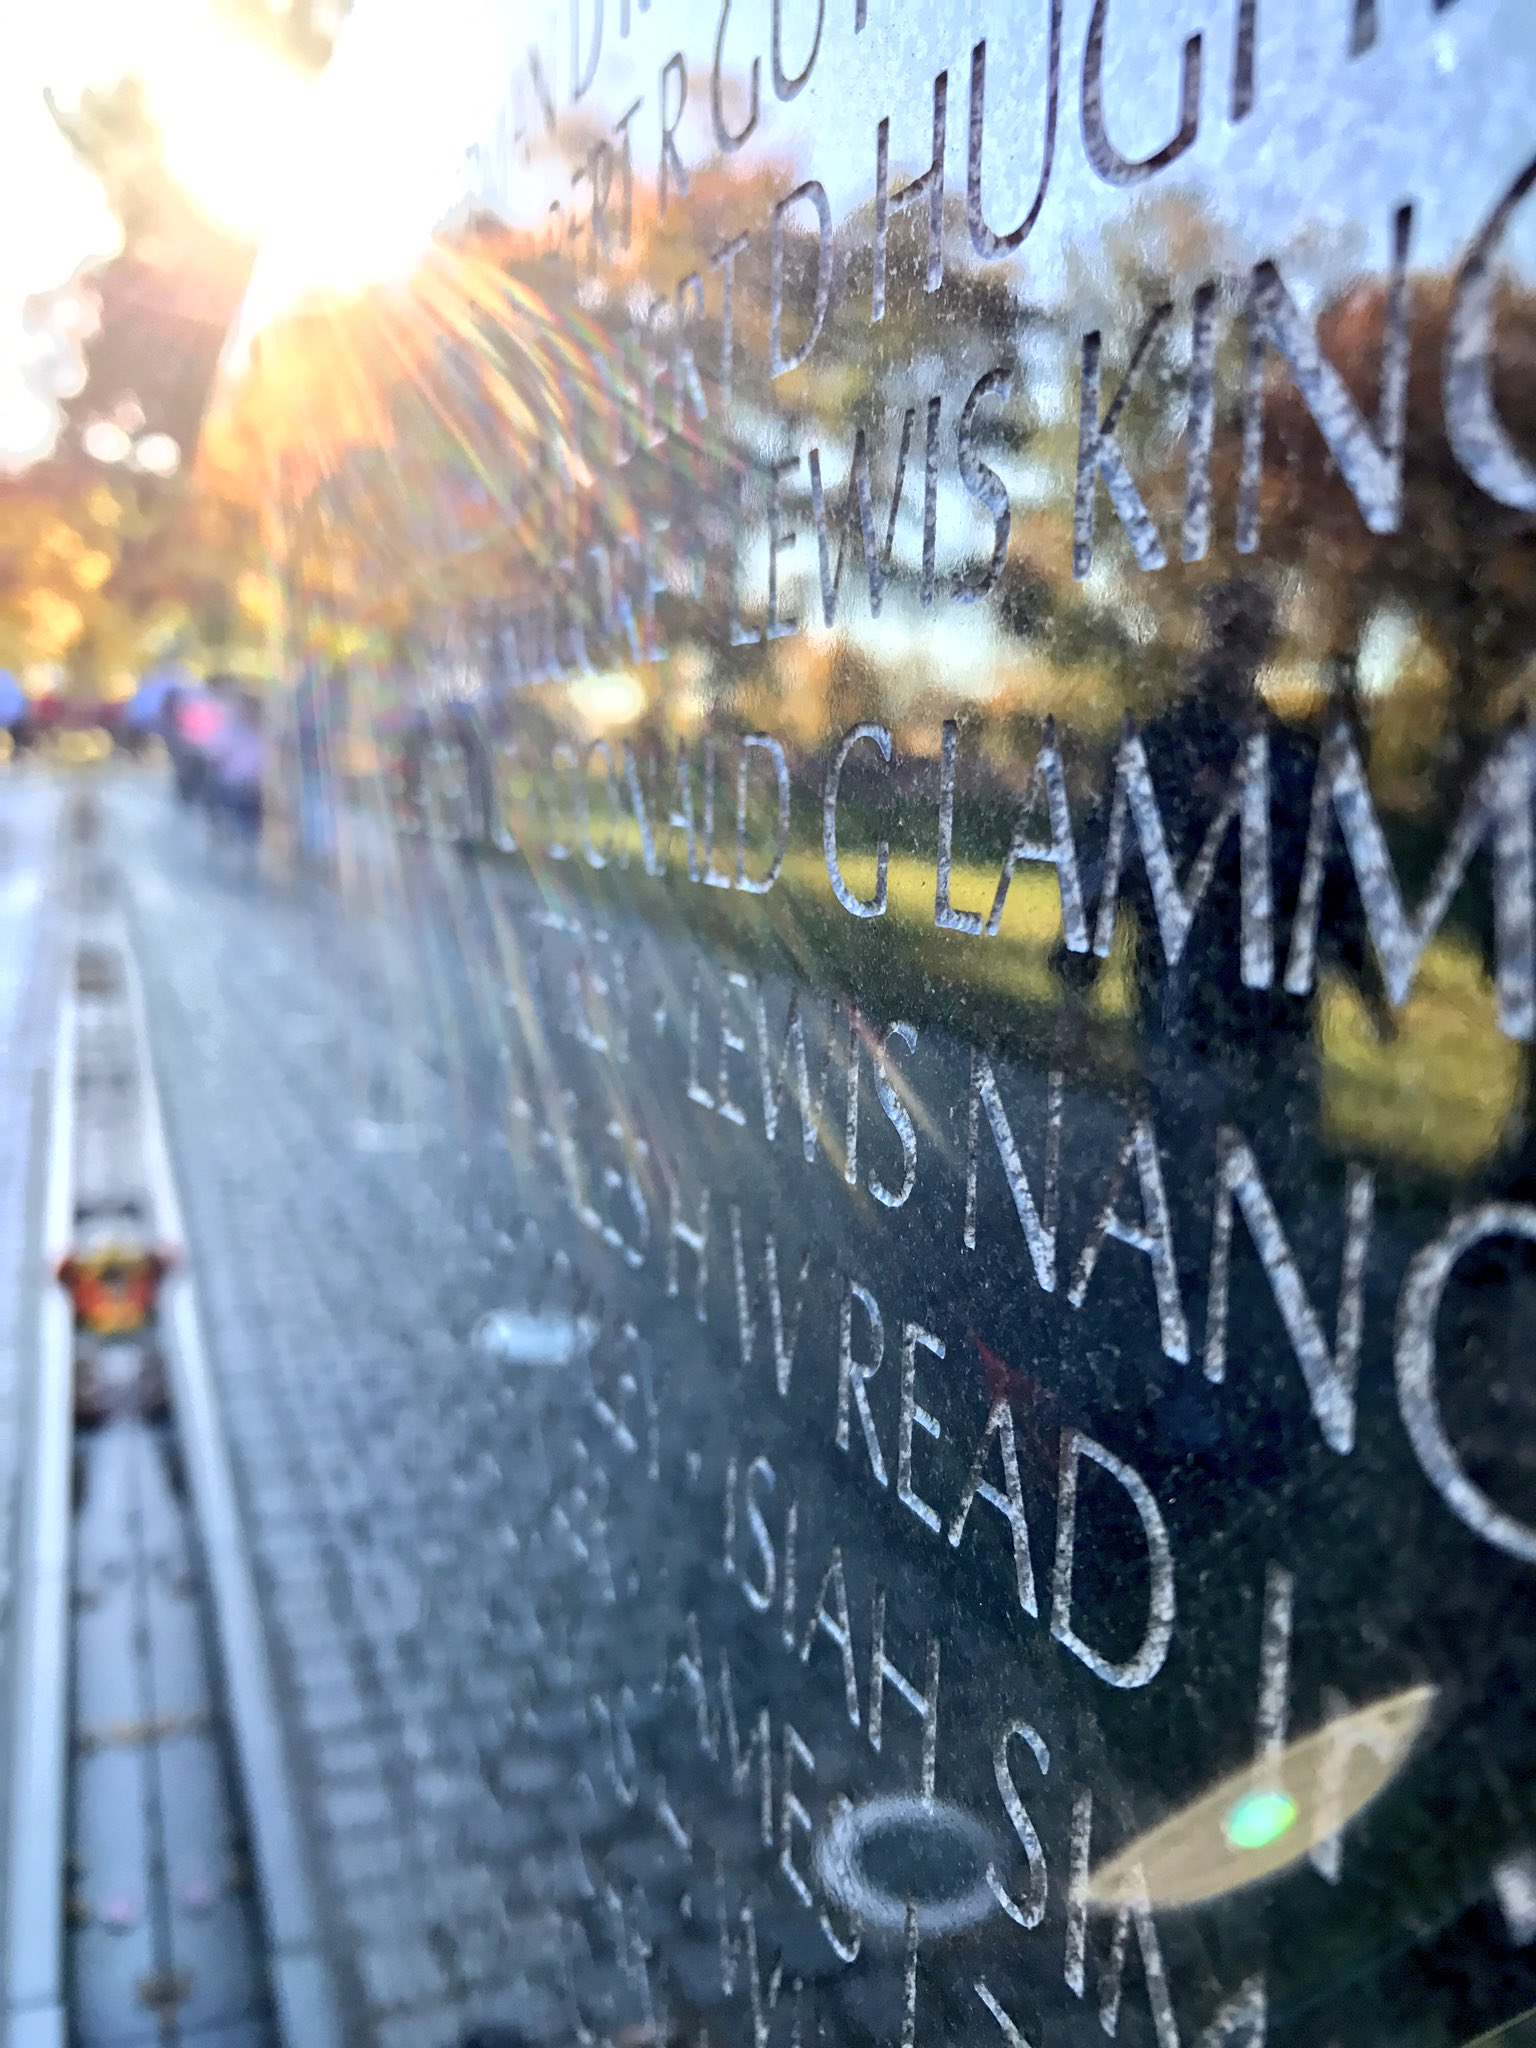 Took this last weekend at the #VietnamMemorial. Our vets have my sincere respect and deepest gratitude. #VeteransDay @nbcwashington https://t.co/IxVwKVJlQp